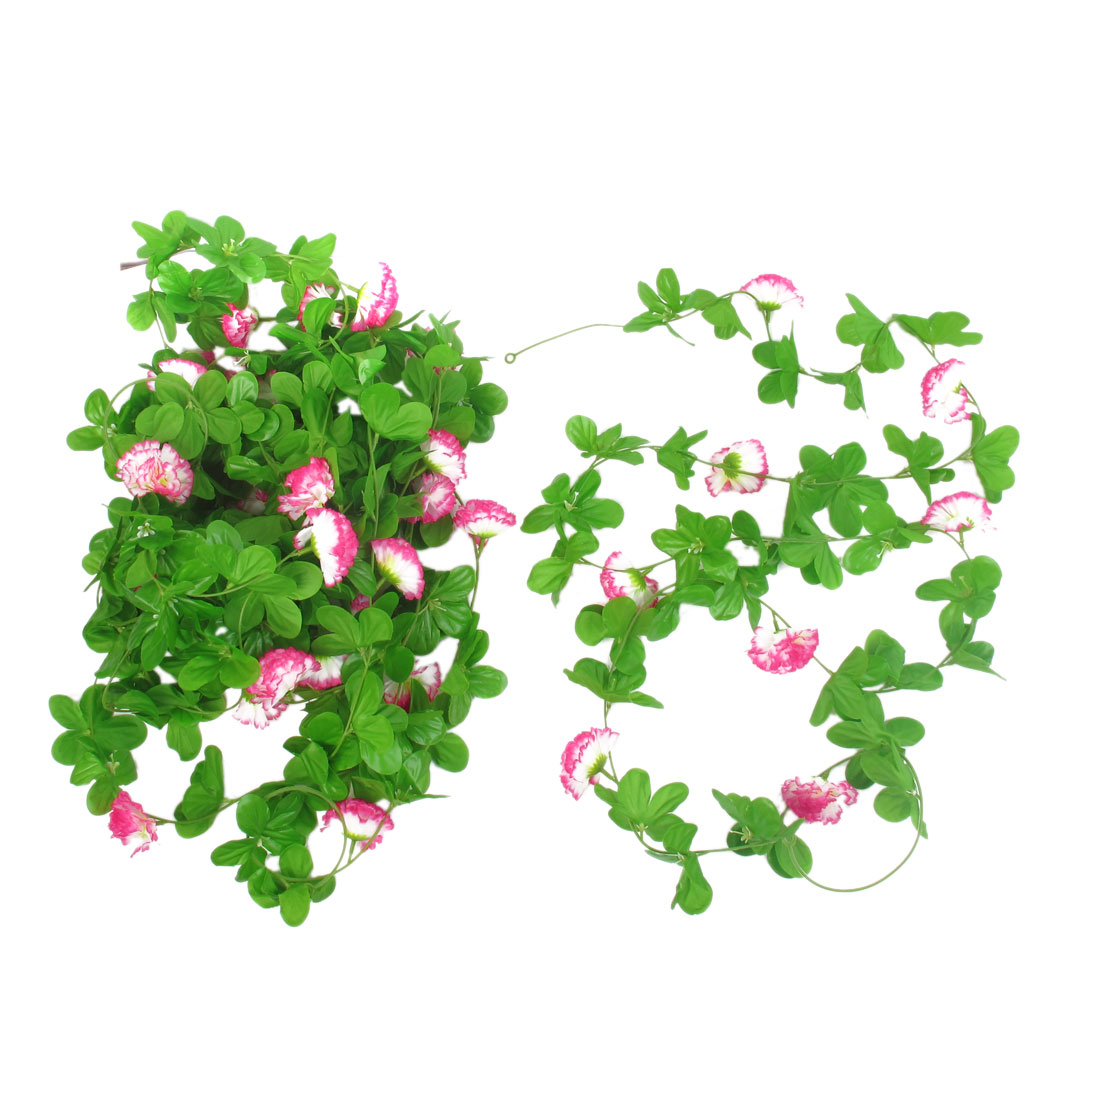 5 Pcs 2.4M Long Colorful Plastic Fabric Artificial Ornament Flower Hanging Vine for Home Party Decor